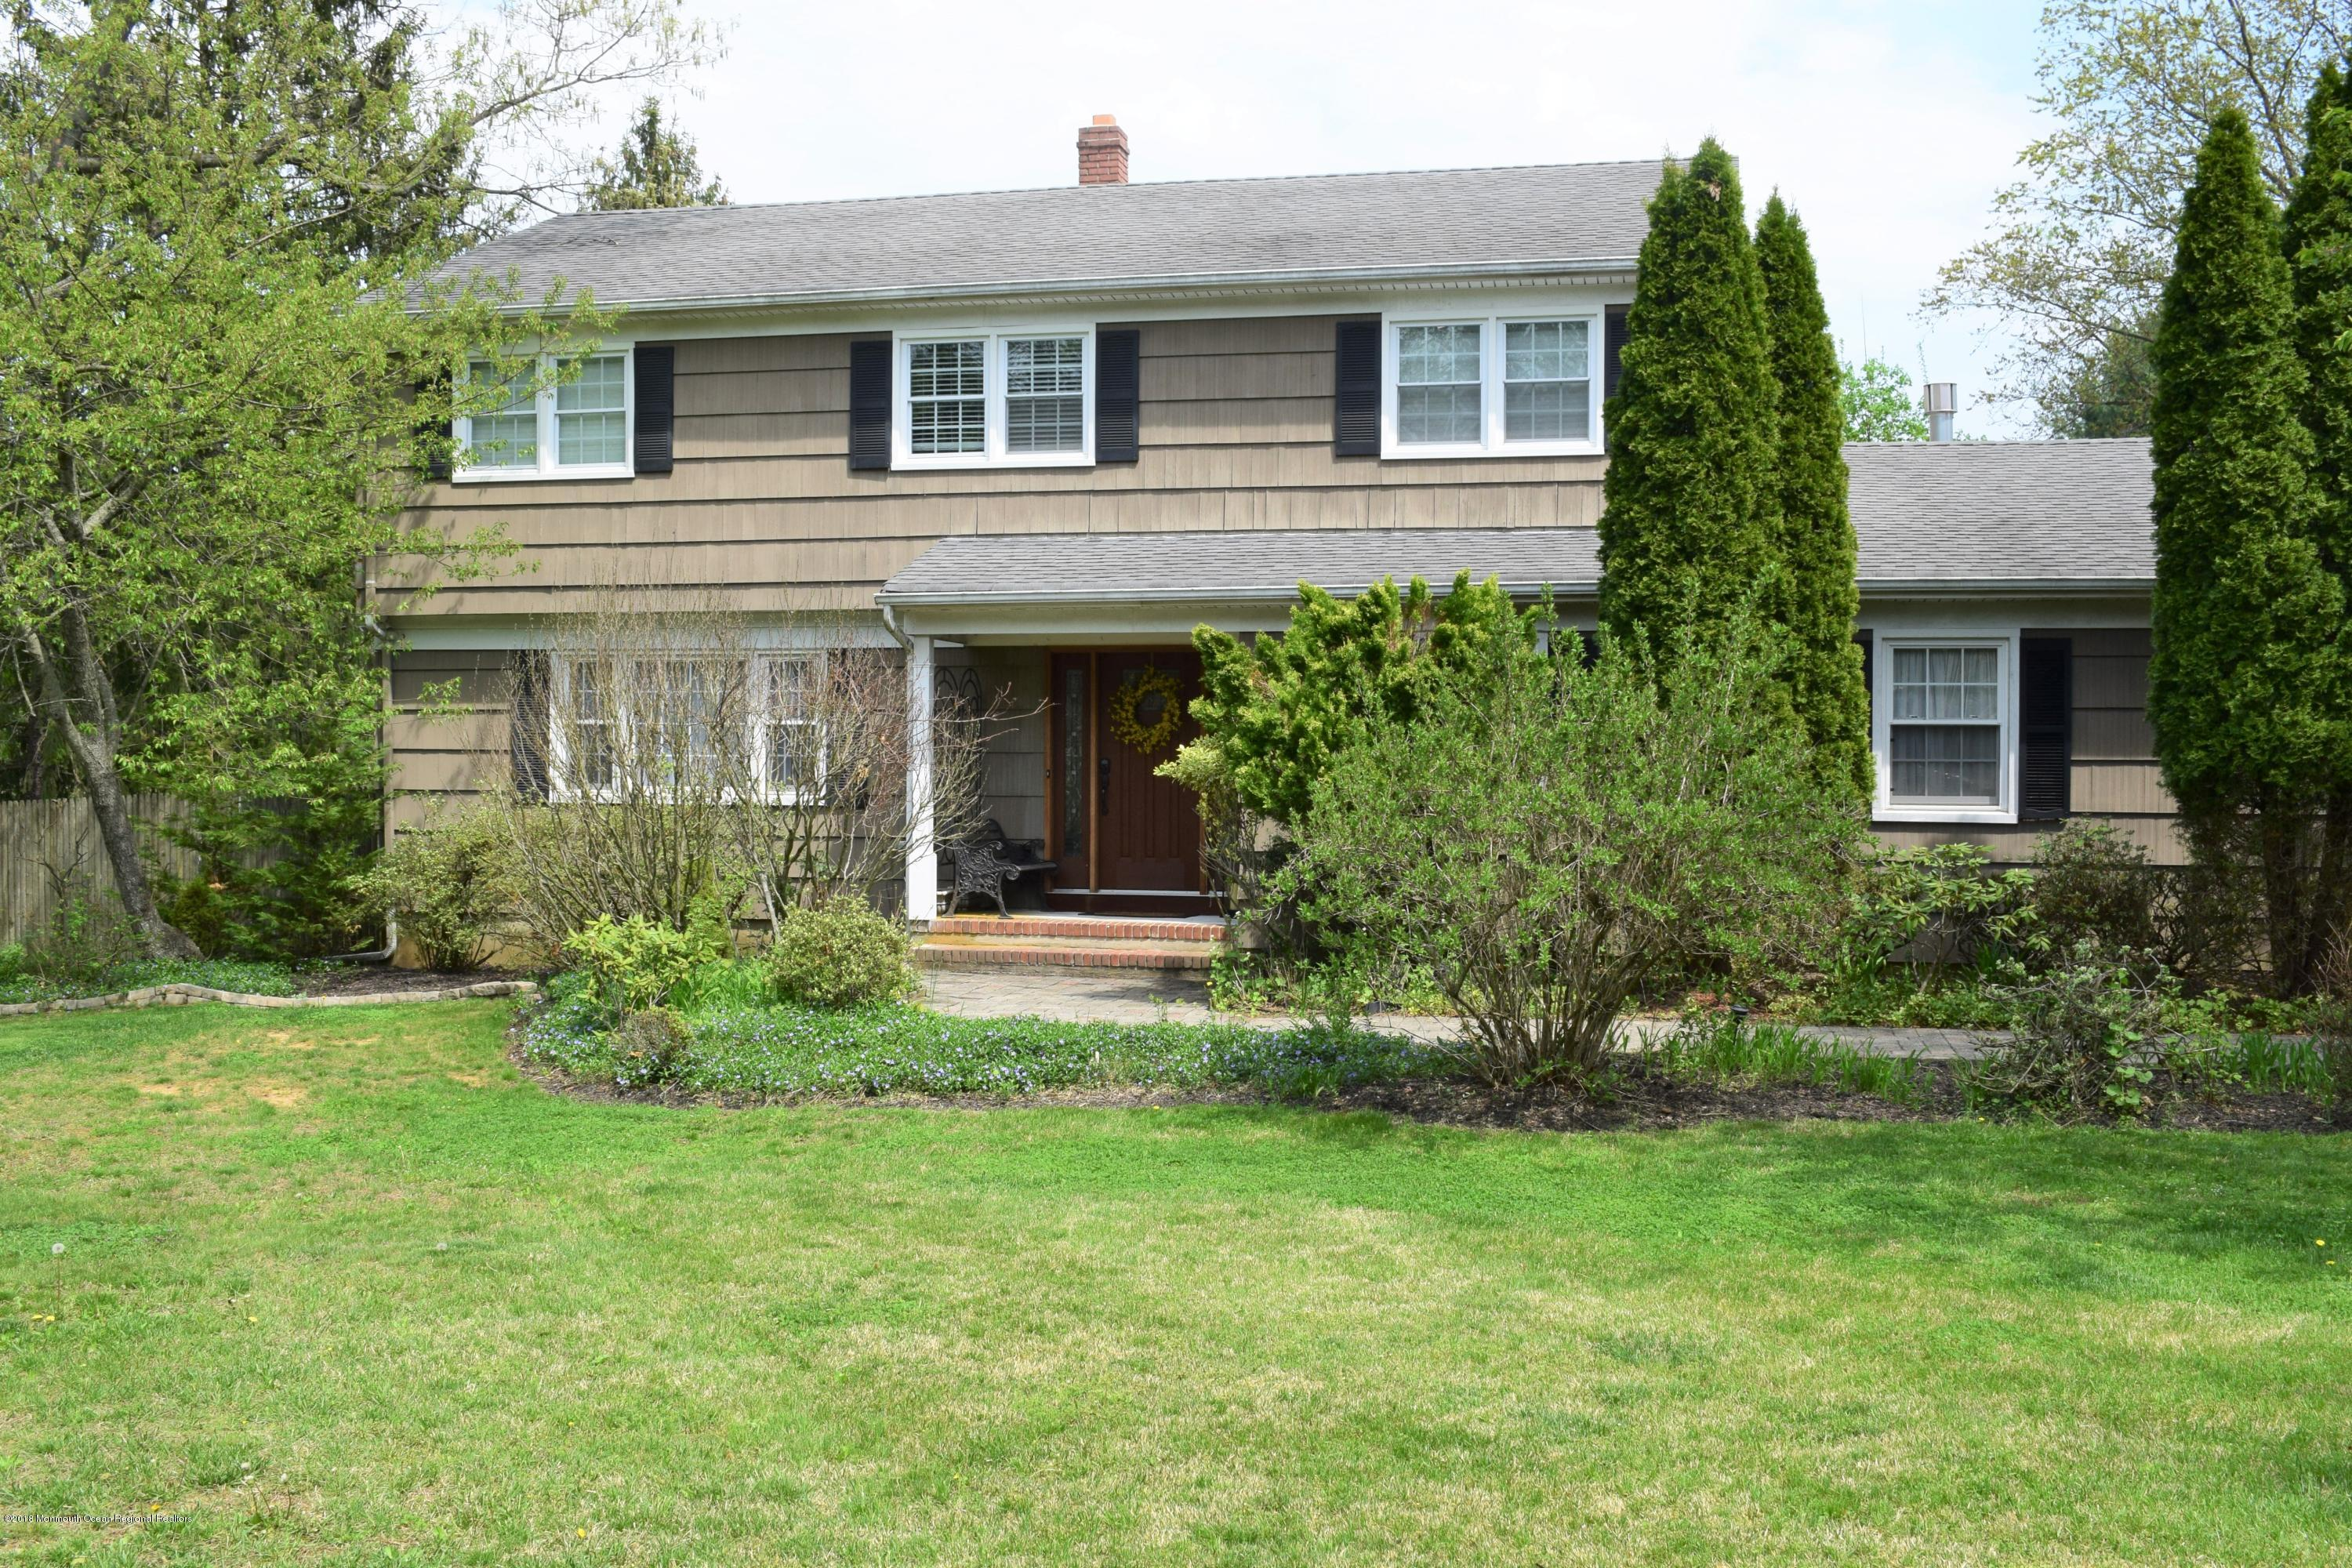 1 IVY HILL ROAD, RED BANK, NJ 07701